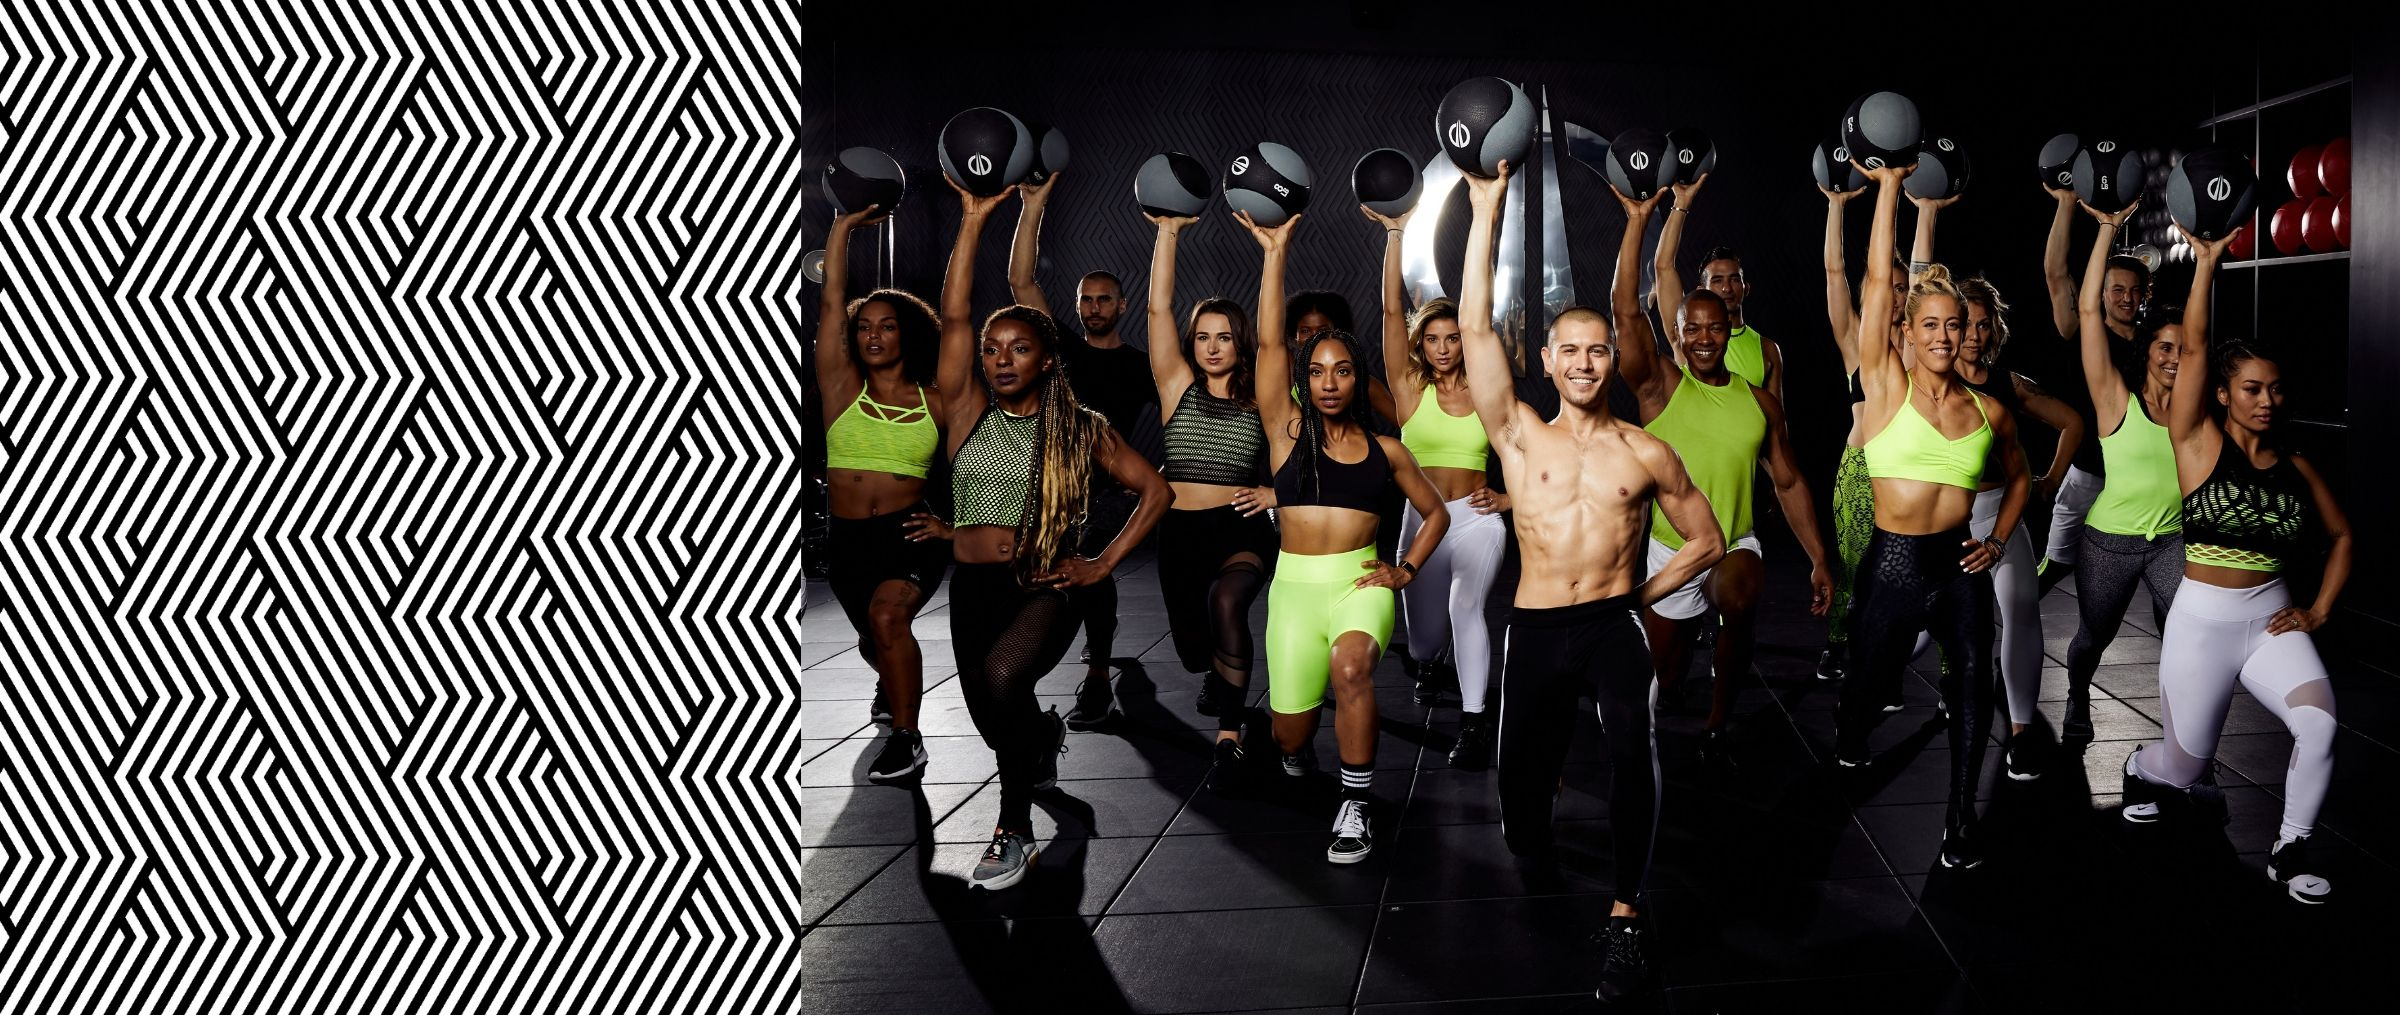 What should you expect? A unique fitness experience combining high intensity circuit training, indoor cycling, and core activation in expert-led classes.